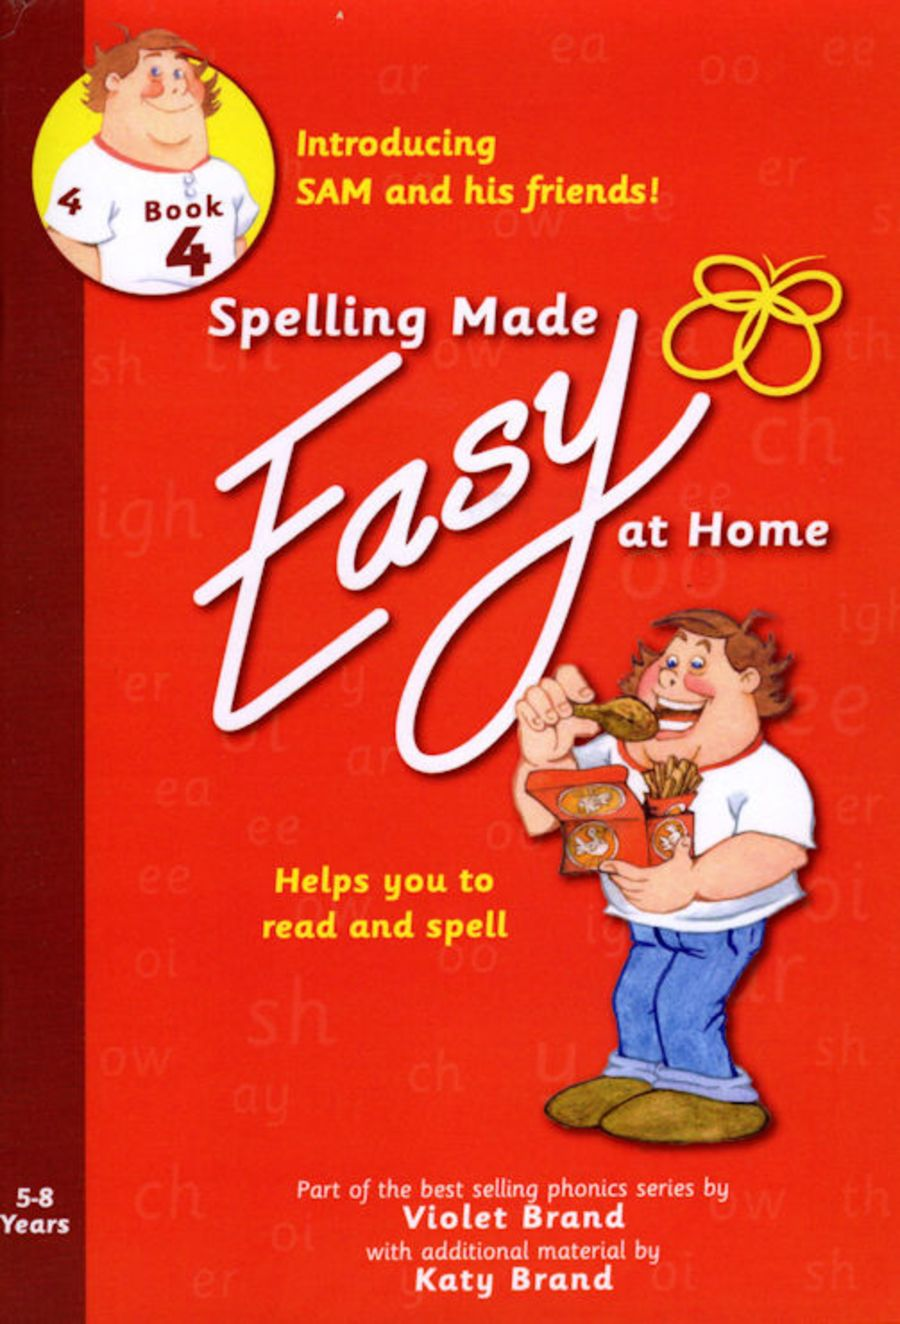 Spelling Made Easy at Home Red Book 4